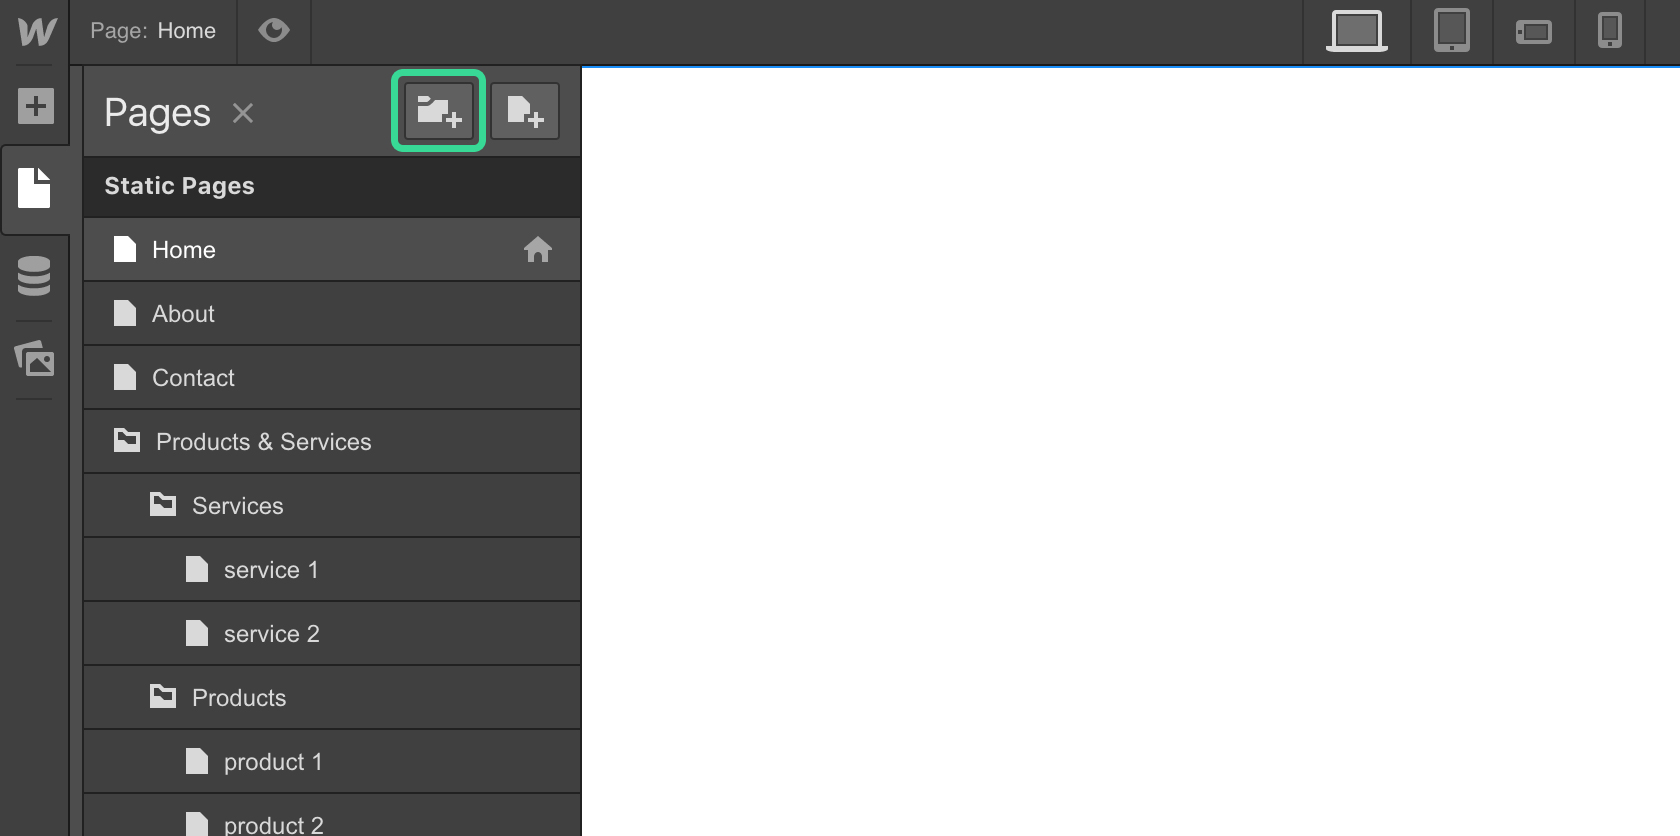 Adding folders in Webflow